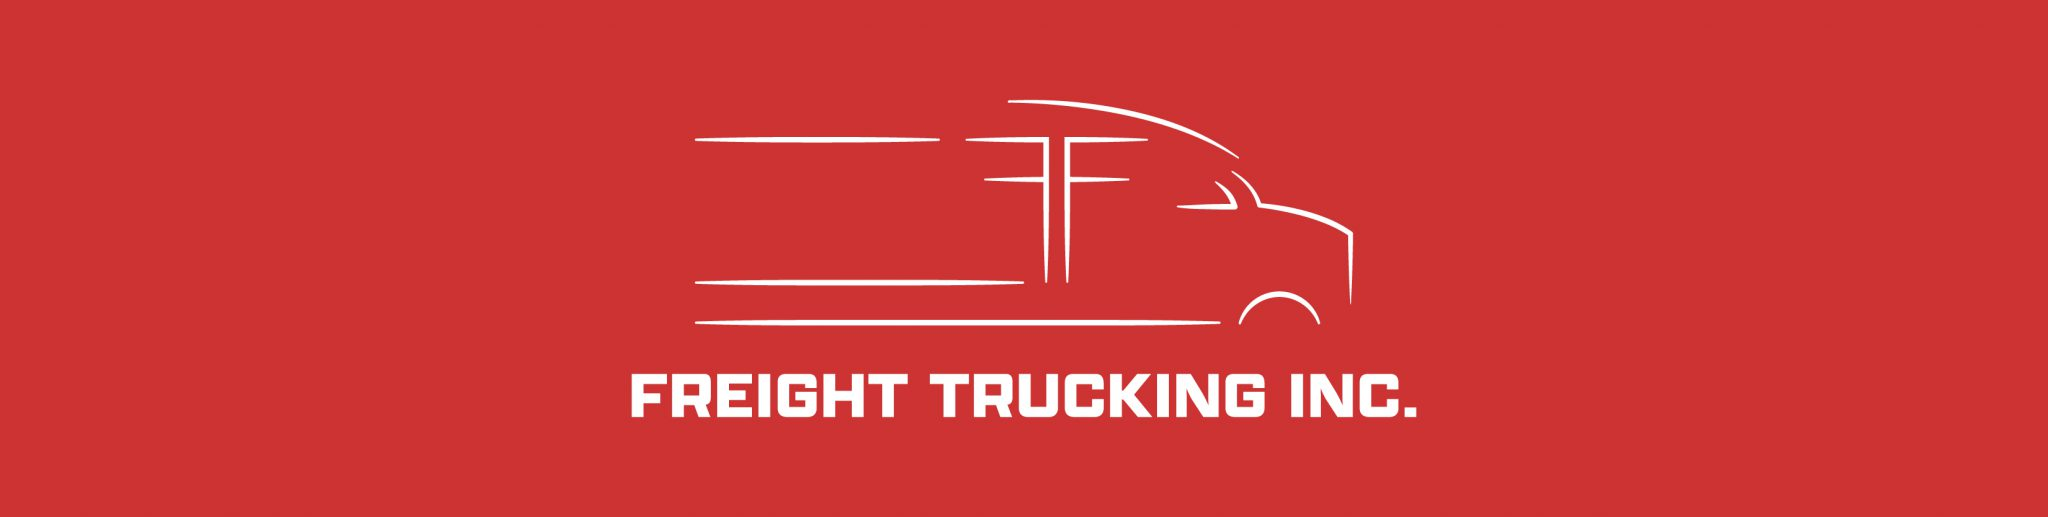 Lipsey Trucking Joins the Freight Trucking, Inc. Family